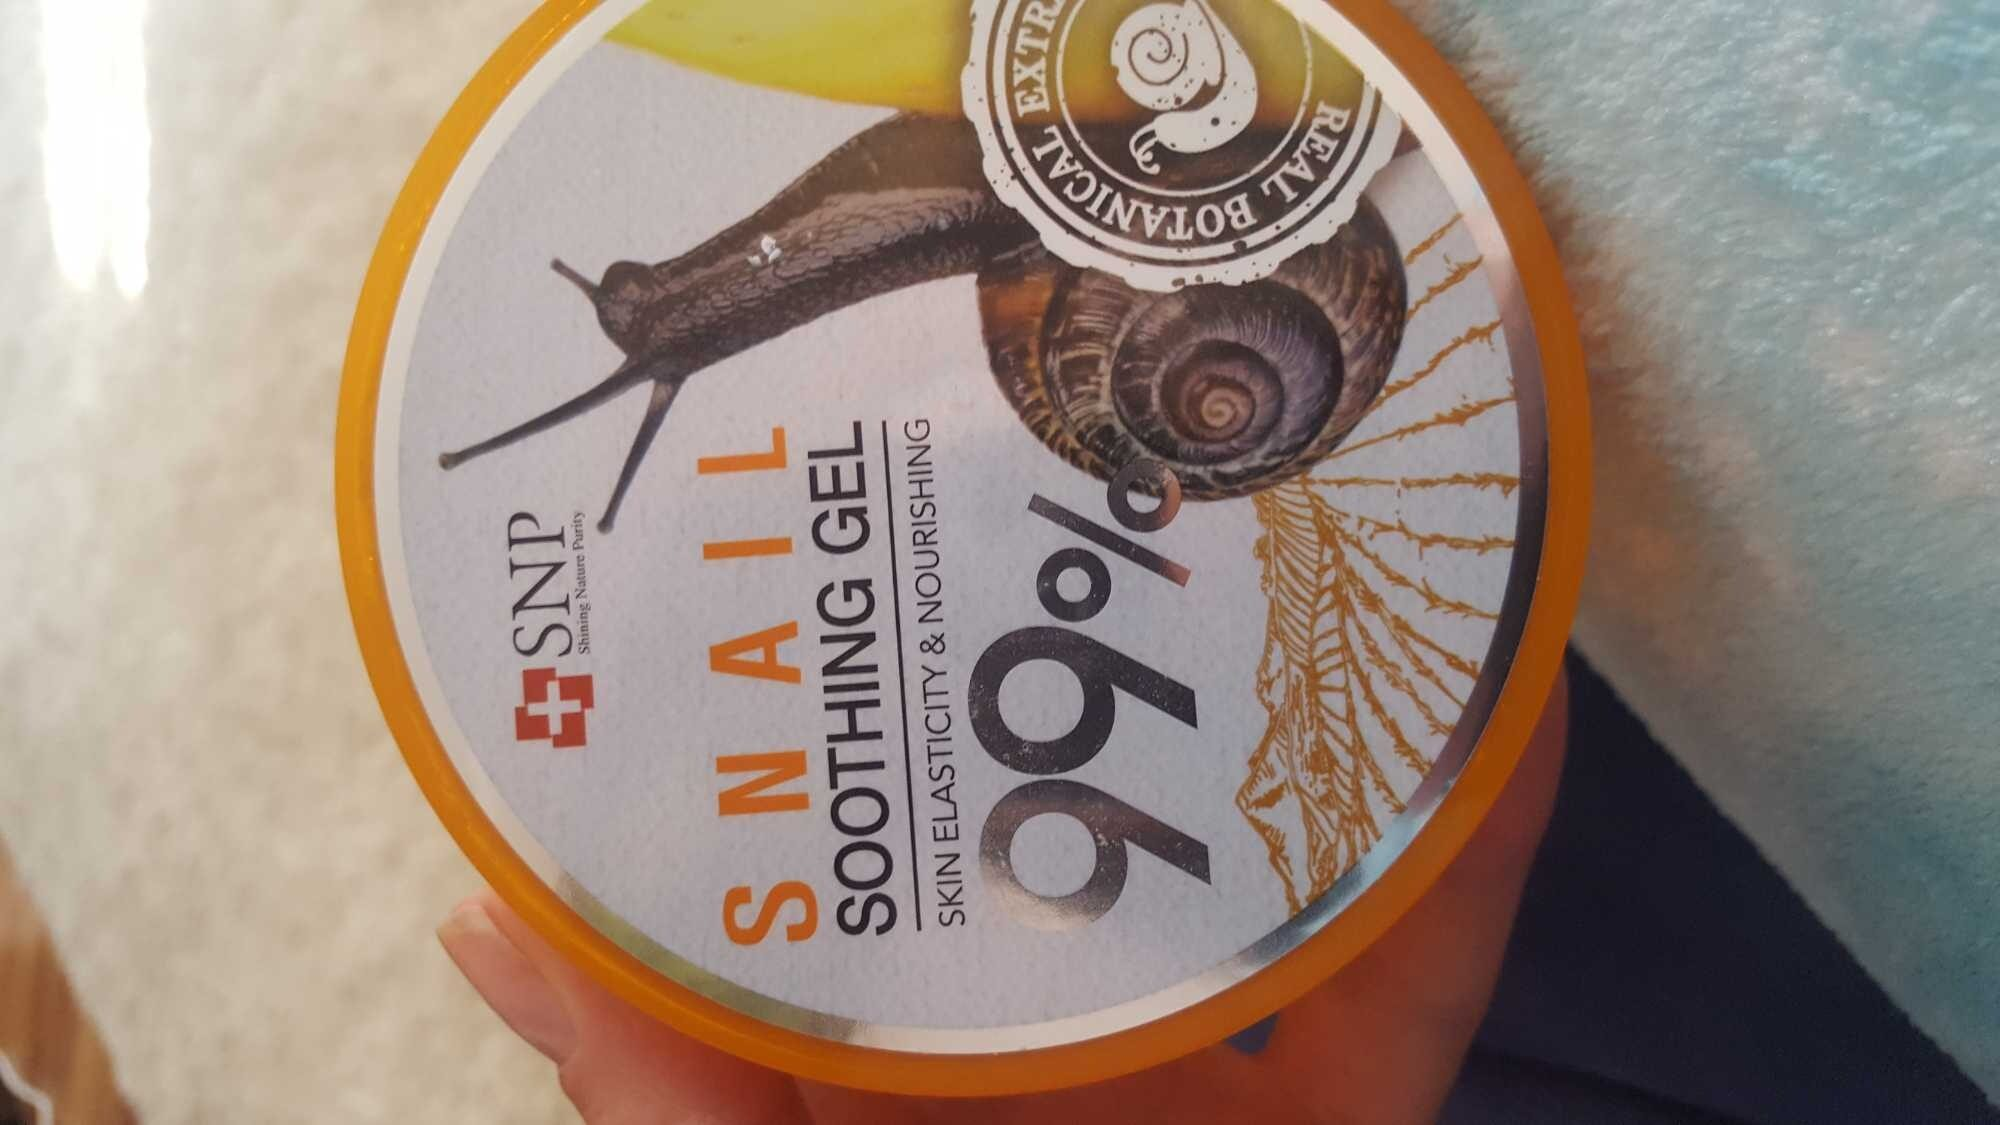 Snail soothing gel - Product - en